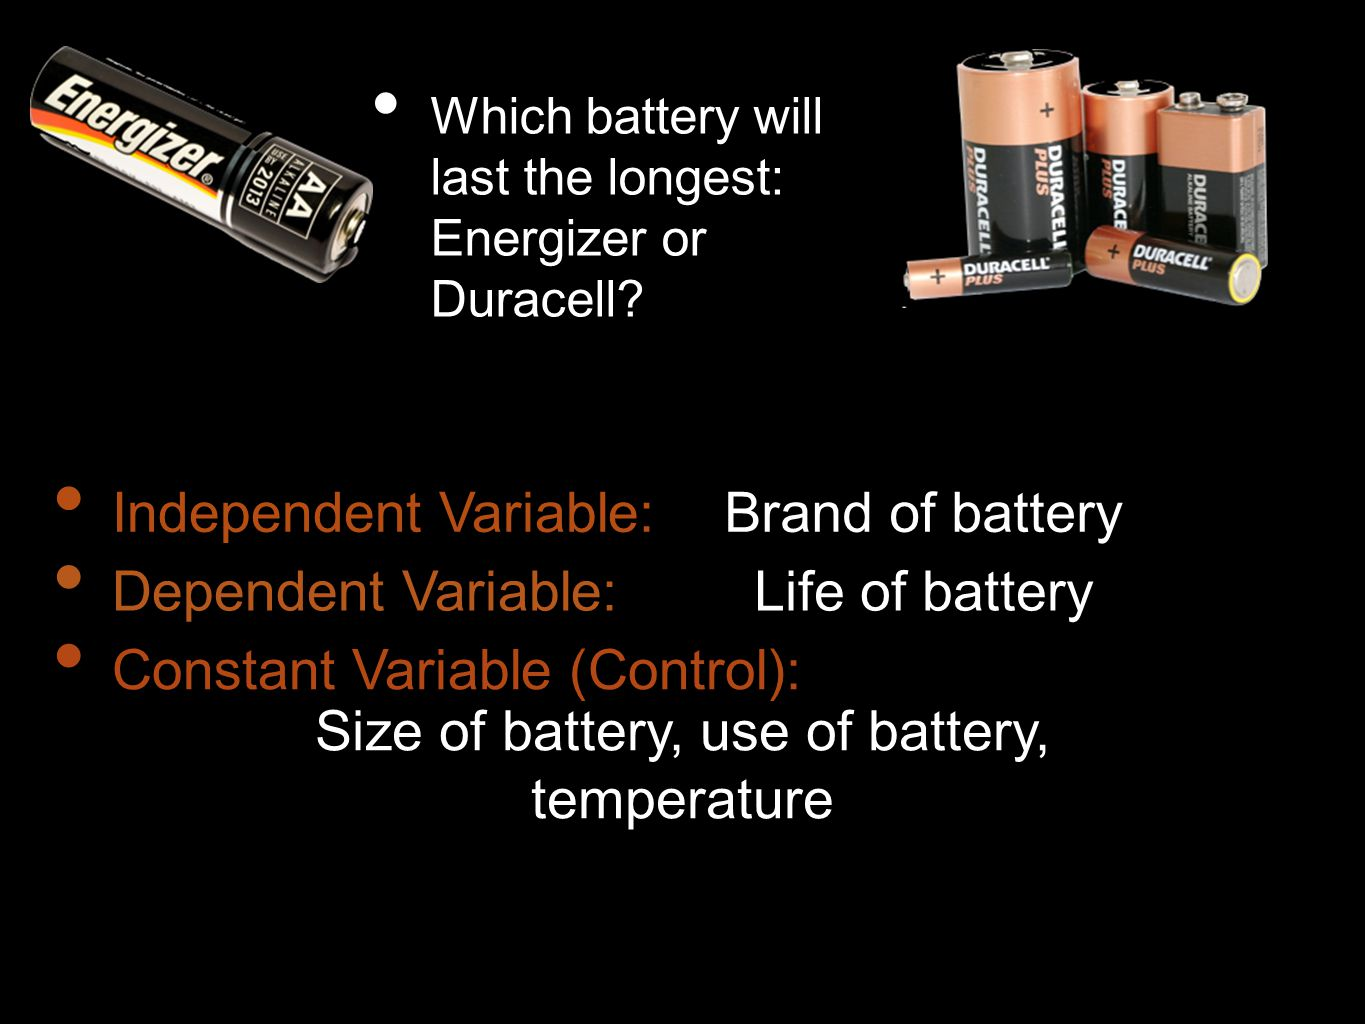 Which battery will last the longest: Energizer or Duracell? Independent Variable: Dependent Variable: Constant Variable (Control): Brand of battery Li